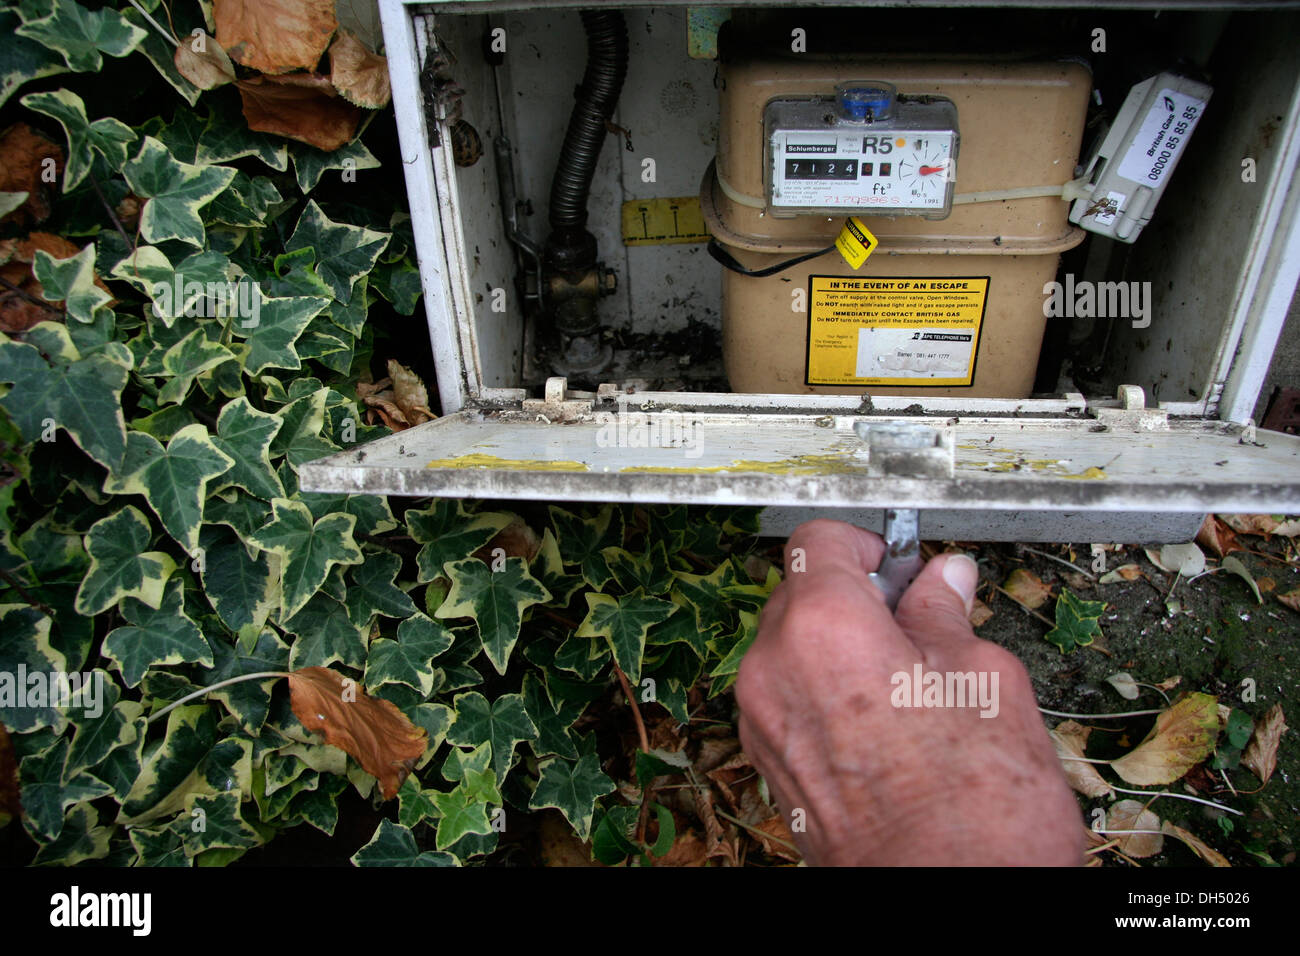 A uk gas meter being read during the Autumn Period - Stock Image